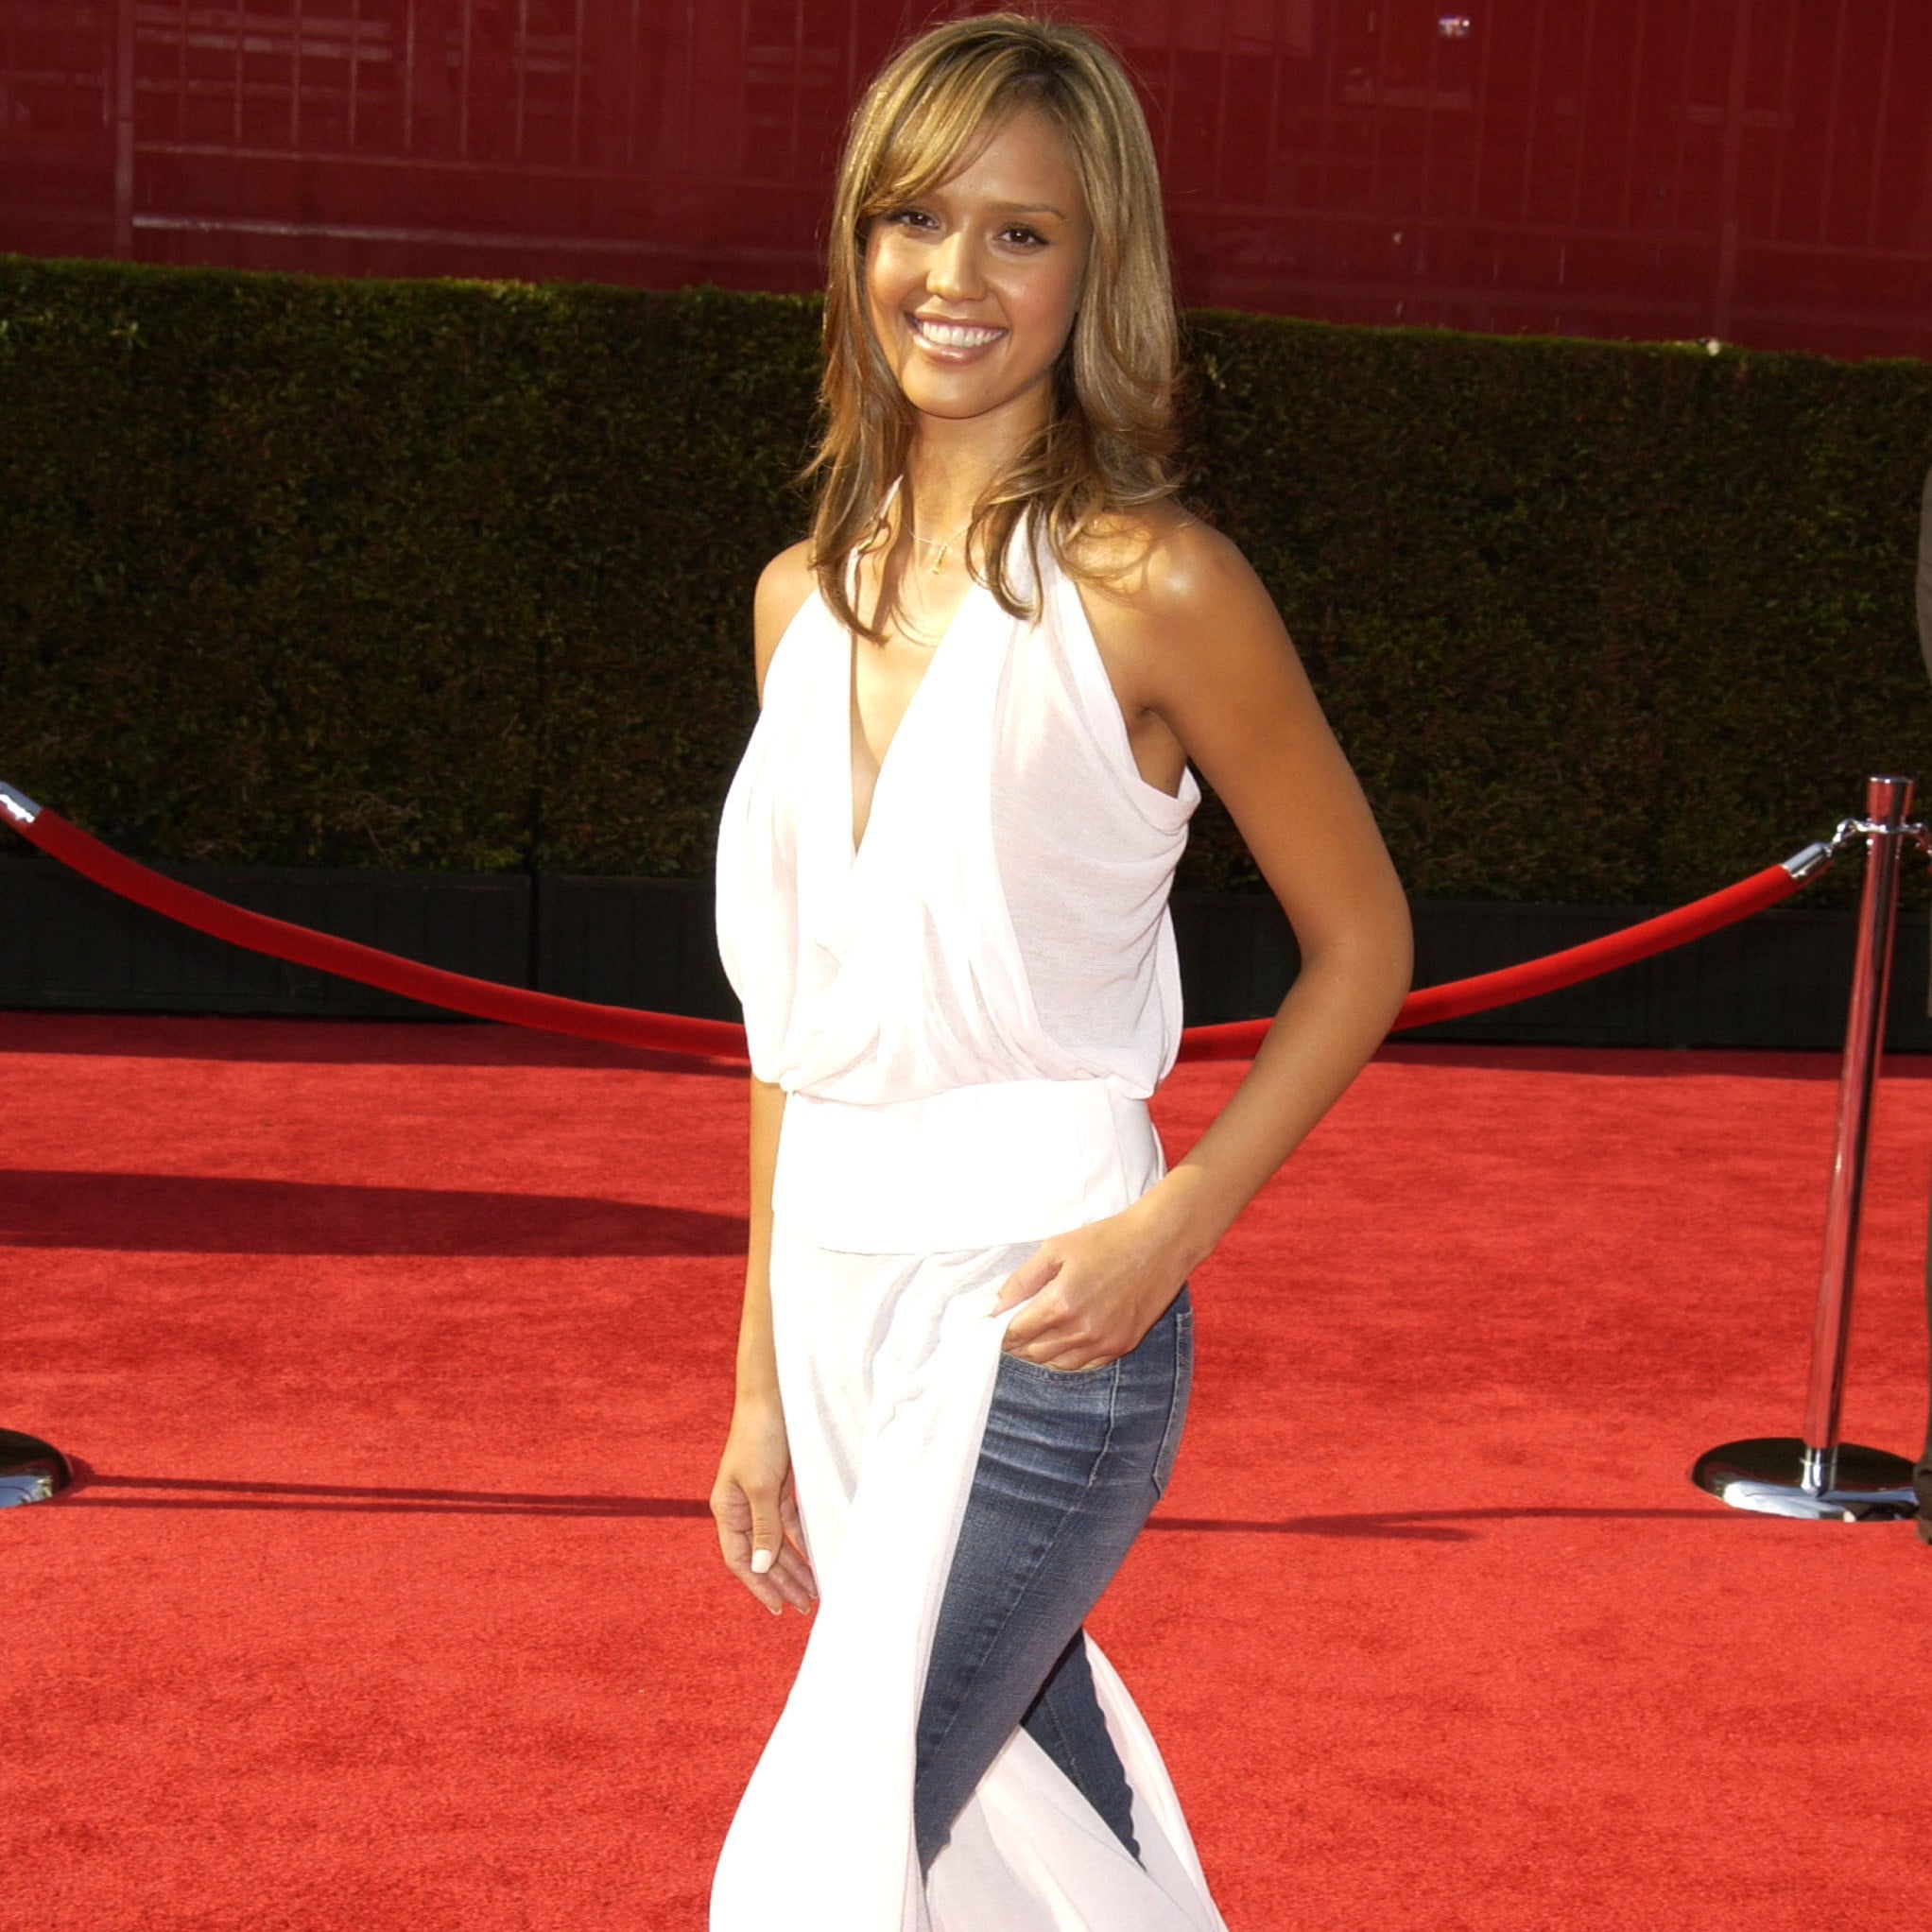 Dress Over Jeans Trend From The 2000s Popsugar Fashion